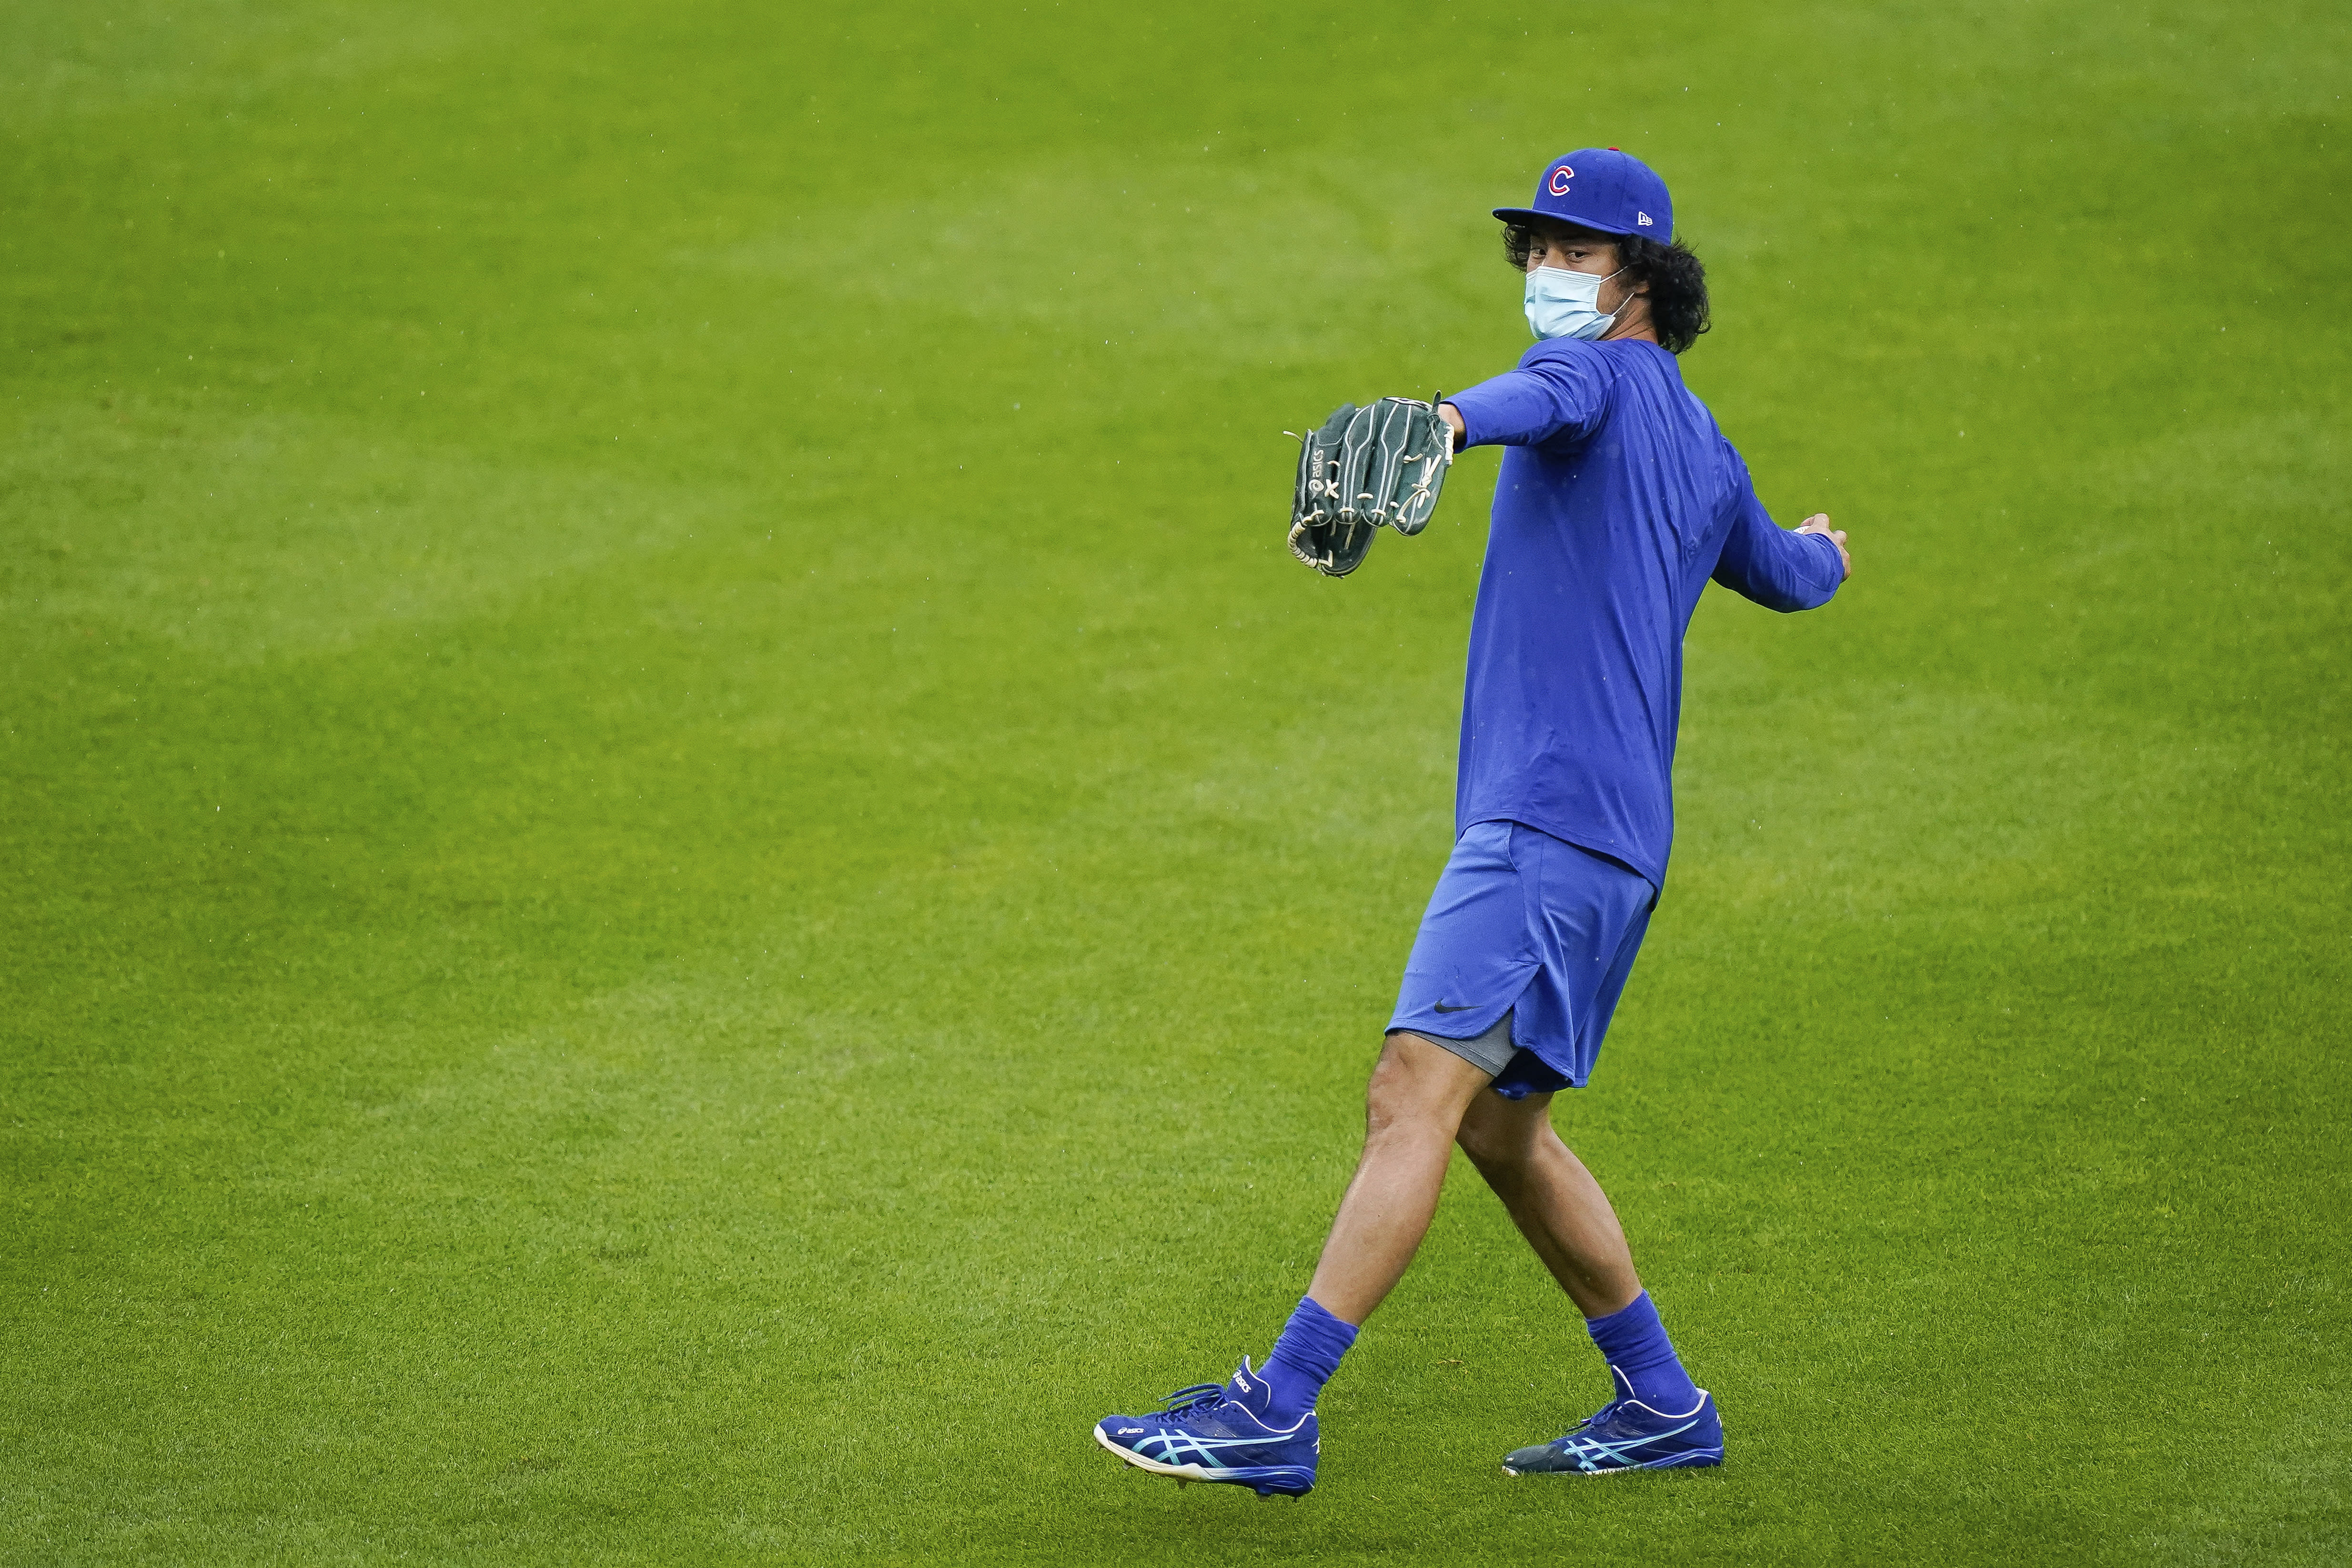 Chicago Cubs starting pitcher Yu Darvish (11), Thursday's scheduled starter, warms up prior to a baseball game against the Cincinnati Reds at Great American Ballpark in Cincinnati, Thursday, July 30, 2020. (AP Photo/Bryan Woolston)